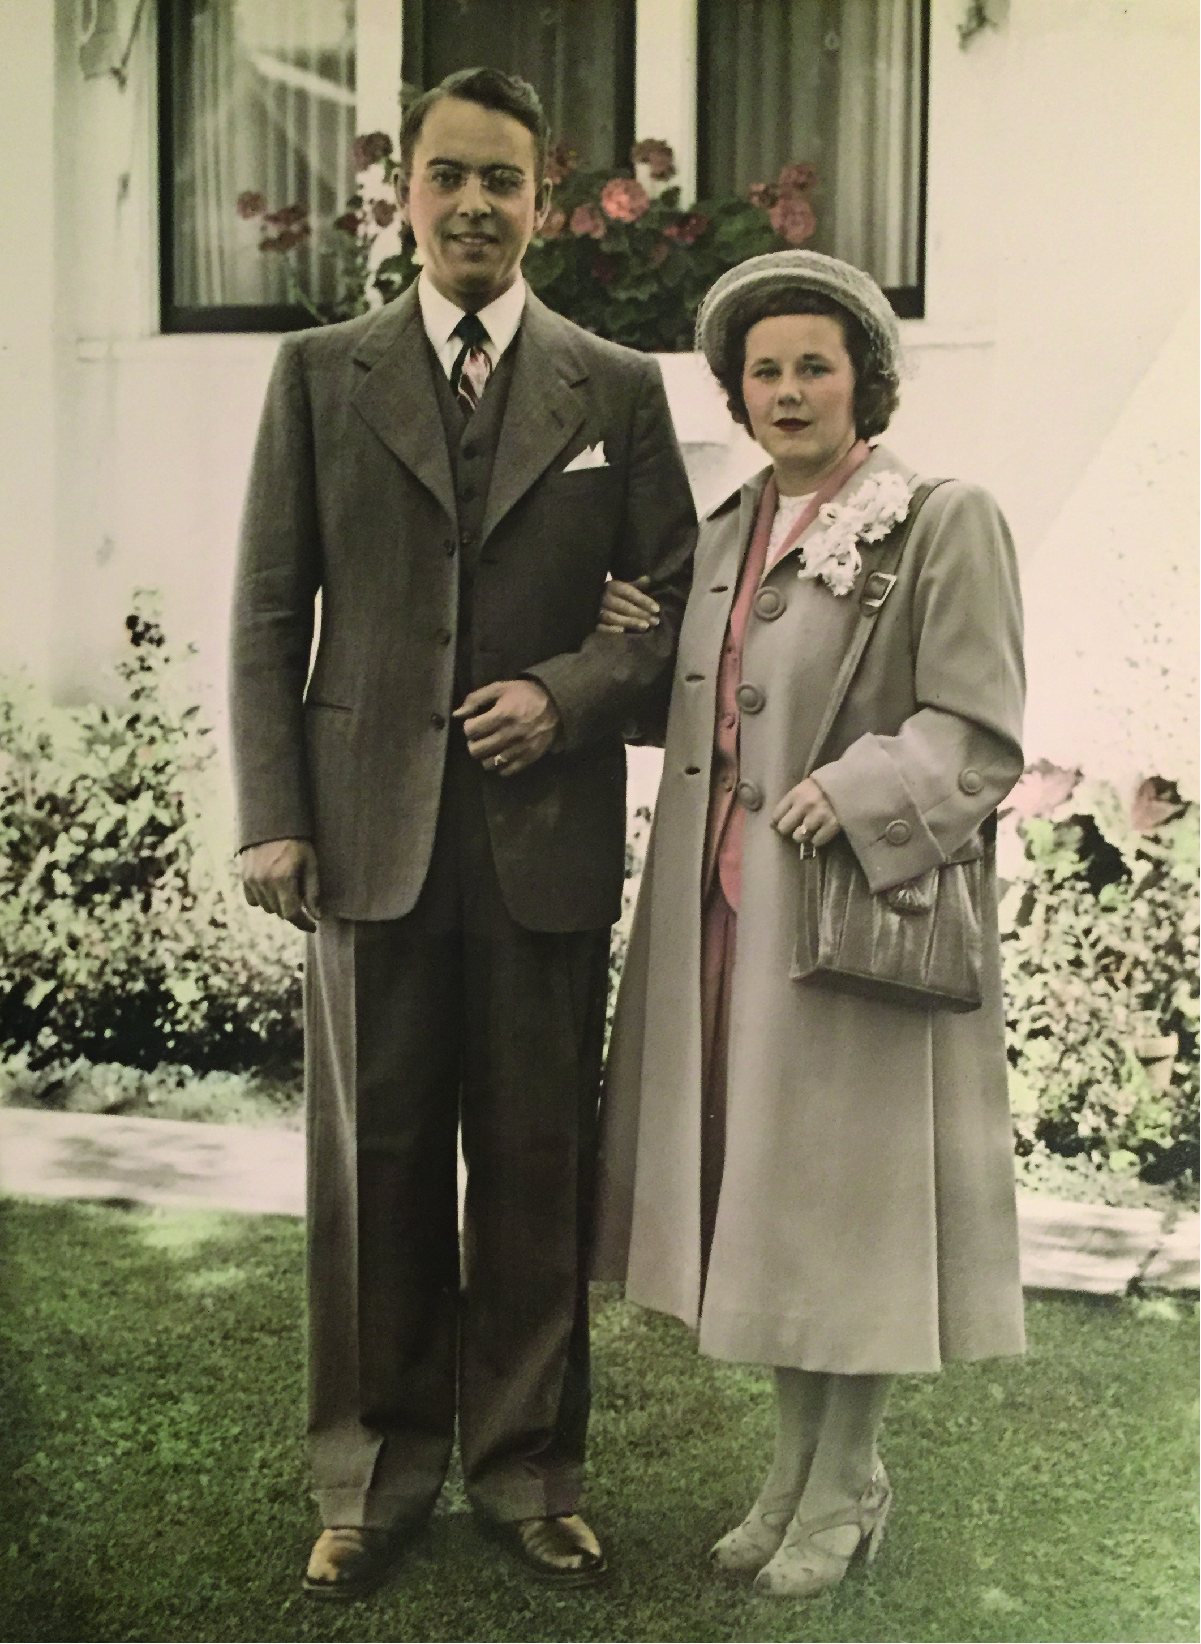 Robert and Evelyn Black as they depart for their honeymoon